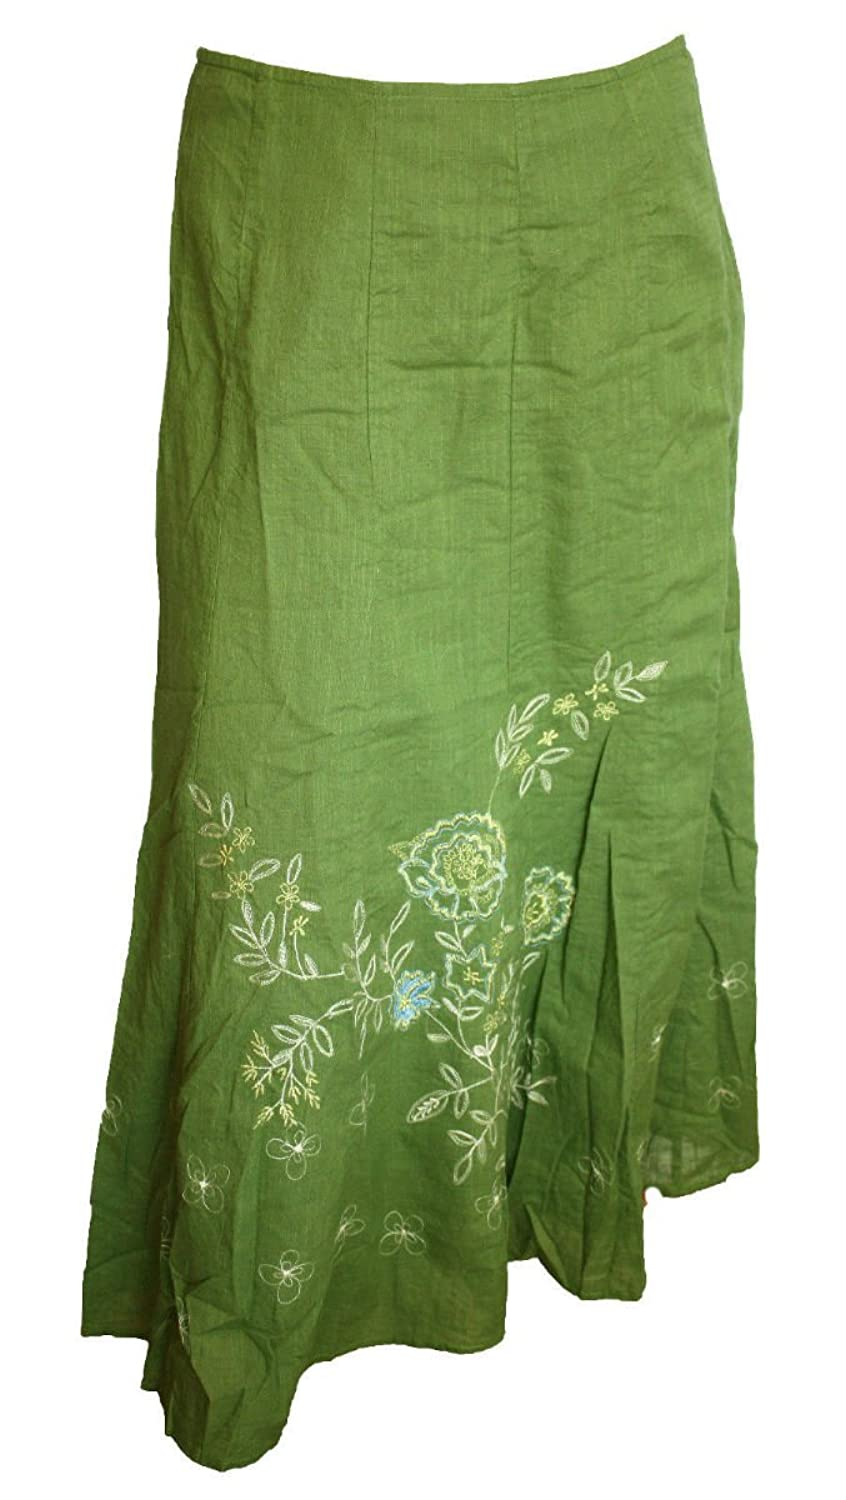 Ex Per Una M&S 1950s Style Floral Embroidered A-Line Skirt. Sizes 8-16.